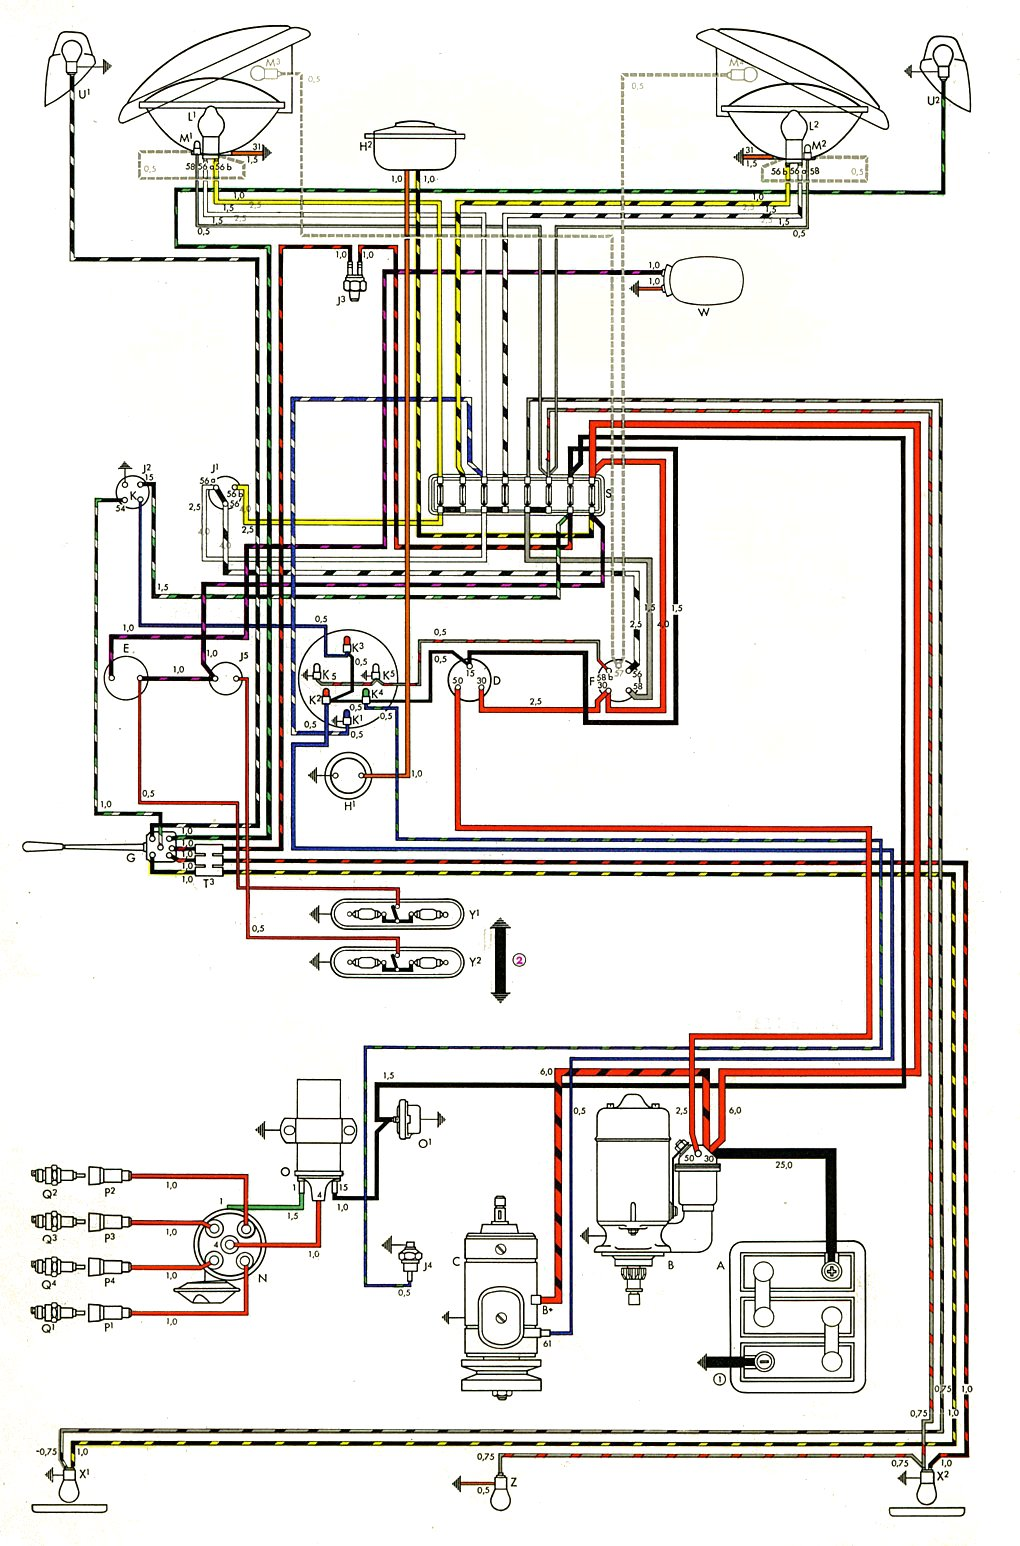 thesamba.com :: type 2 wiring diagrams keh 2600 speaker wiring diagram ebp2 wiring diagram